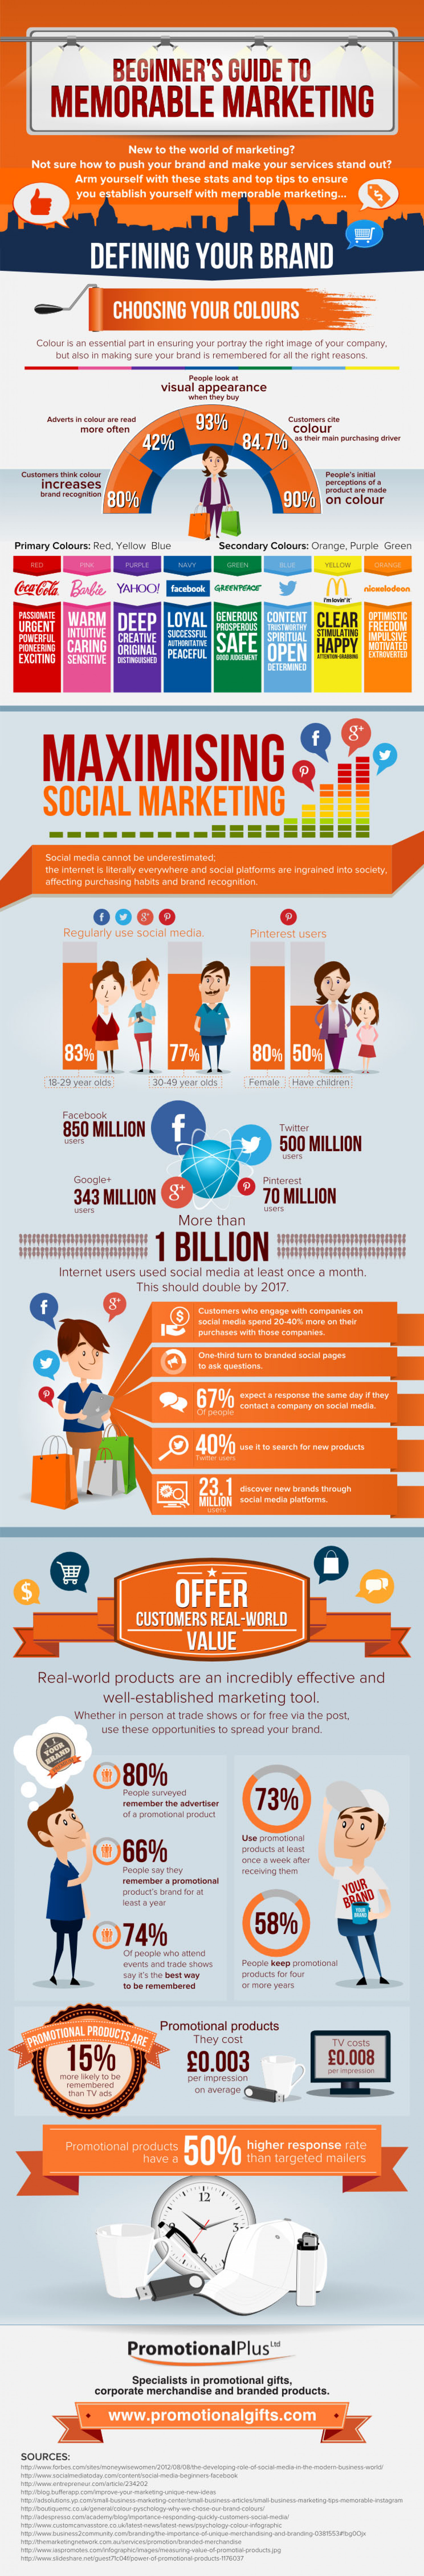 A Beginner's Guide To Memorable Marketing Infographic